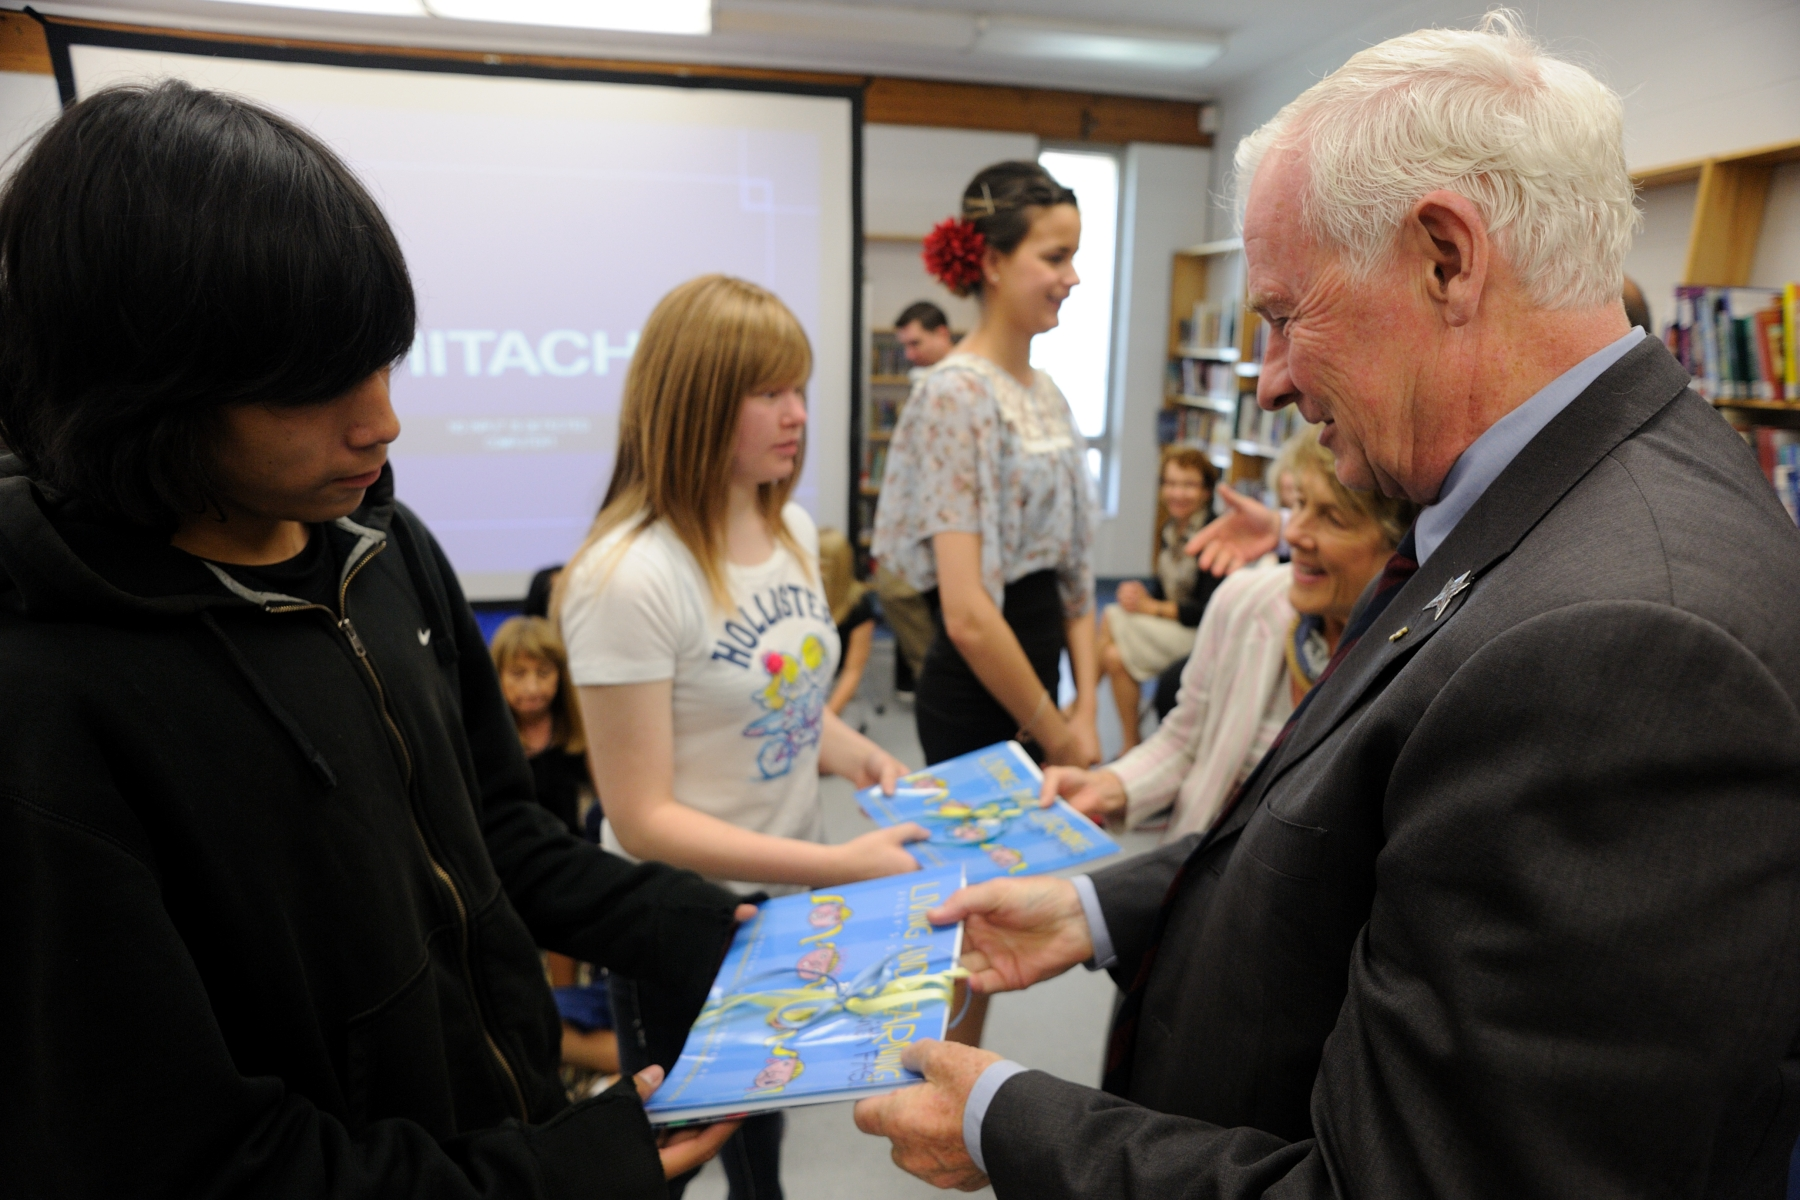 Their Excellencies met with students of the Intermediate Bridges FASD Program in the school library to discuss their experiences, successes and challenges of living with FASD.